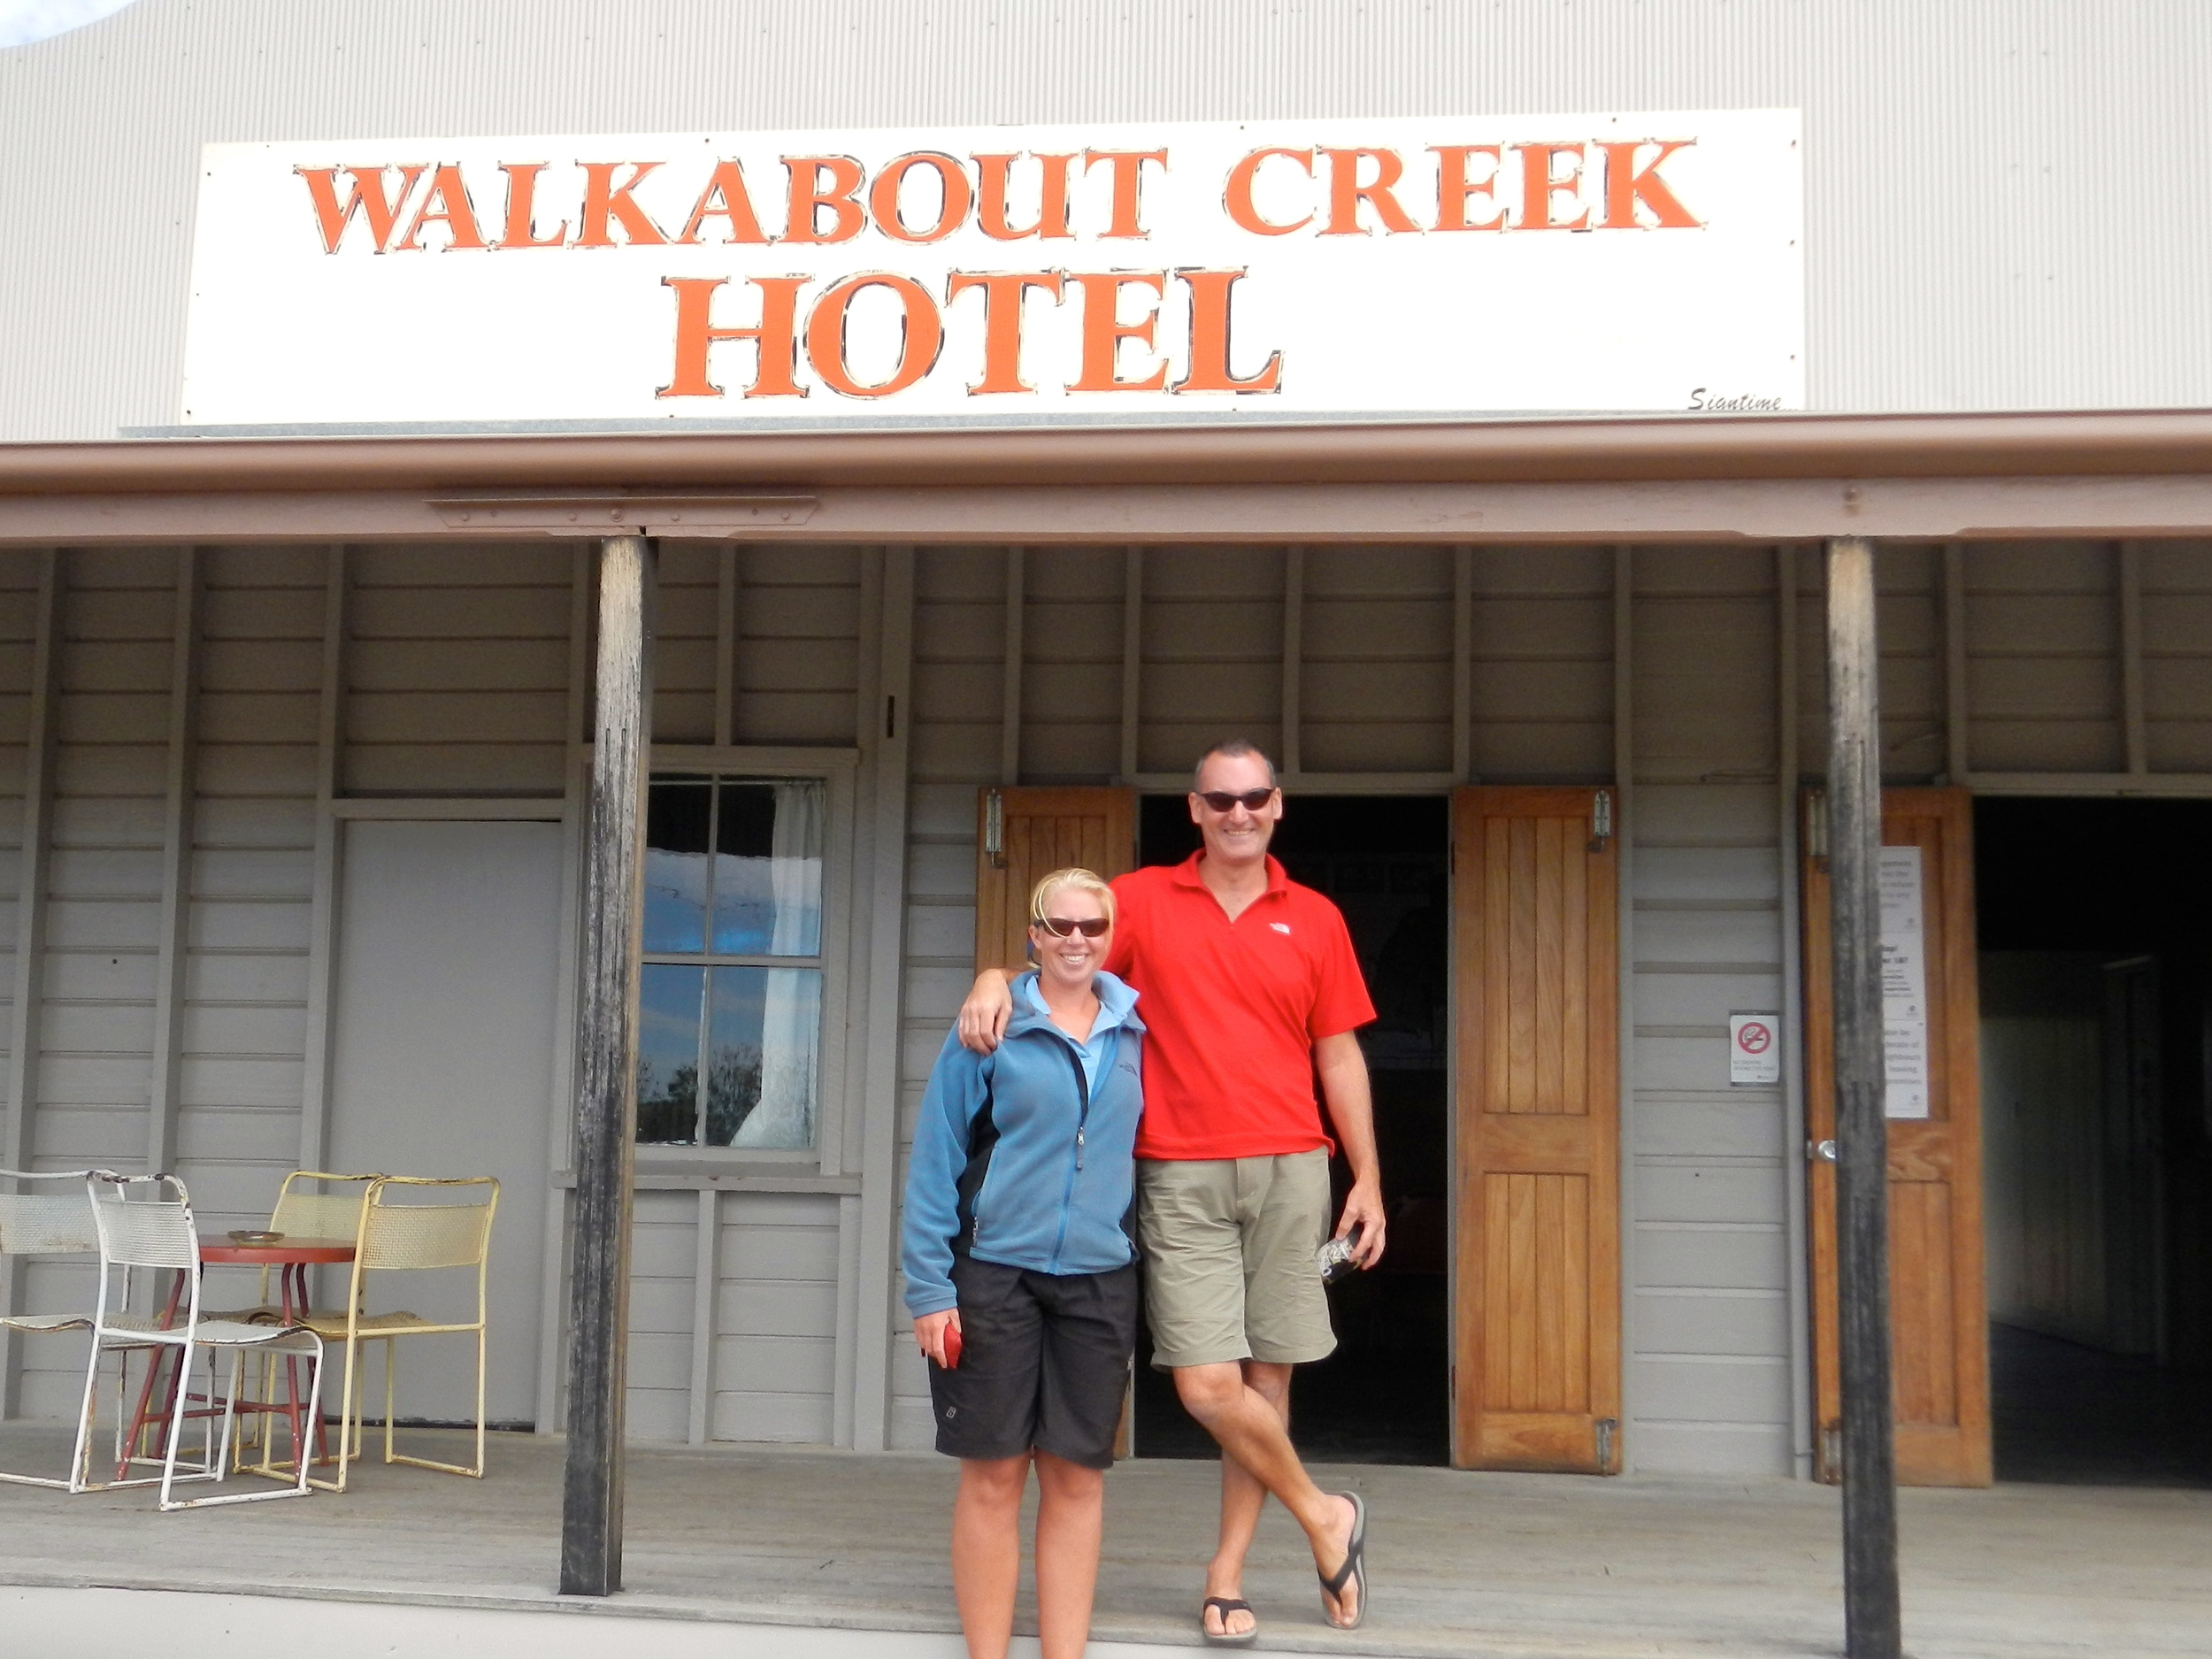 Walkabout Creek Hotel